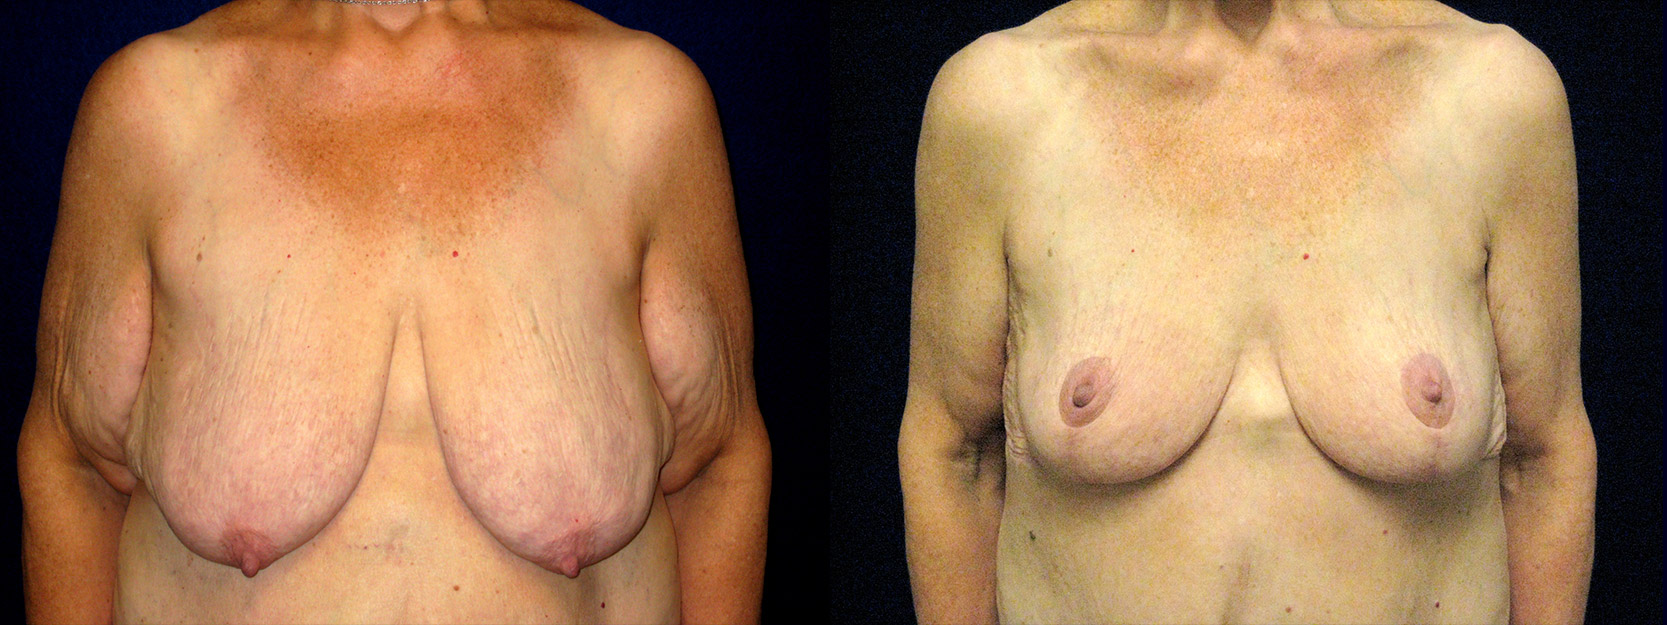 Frontal View - Breast Reduction Mastopexy and Arm Lift After Massive Weight Loss